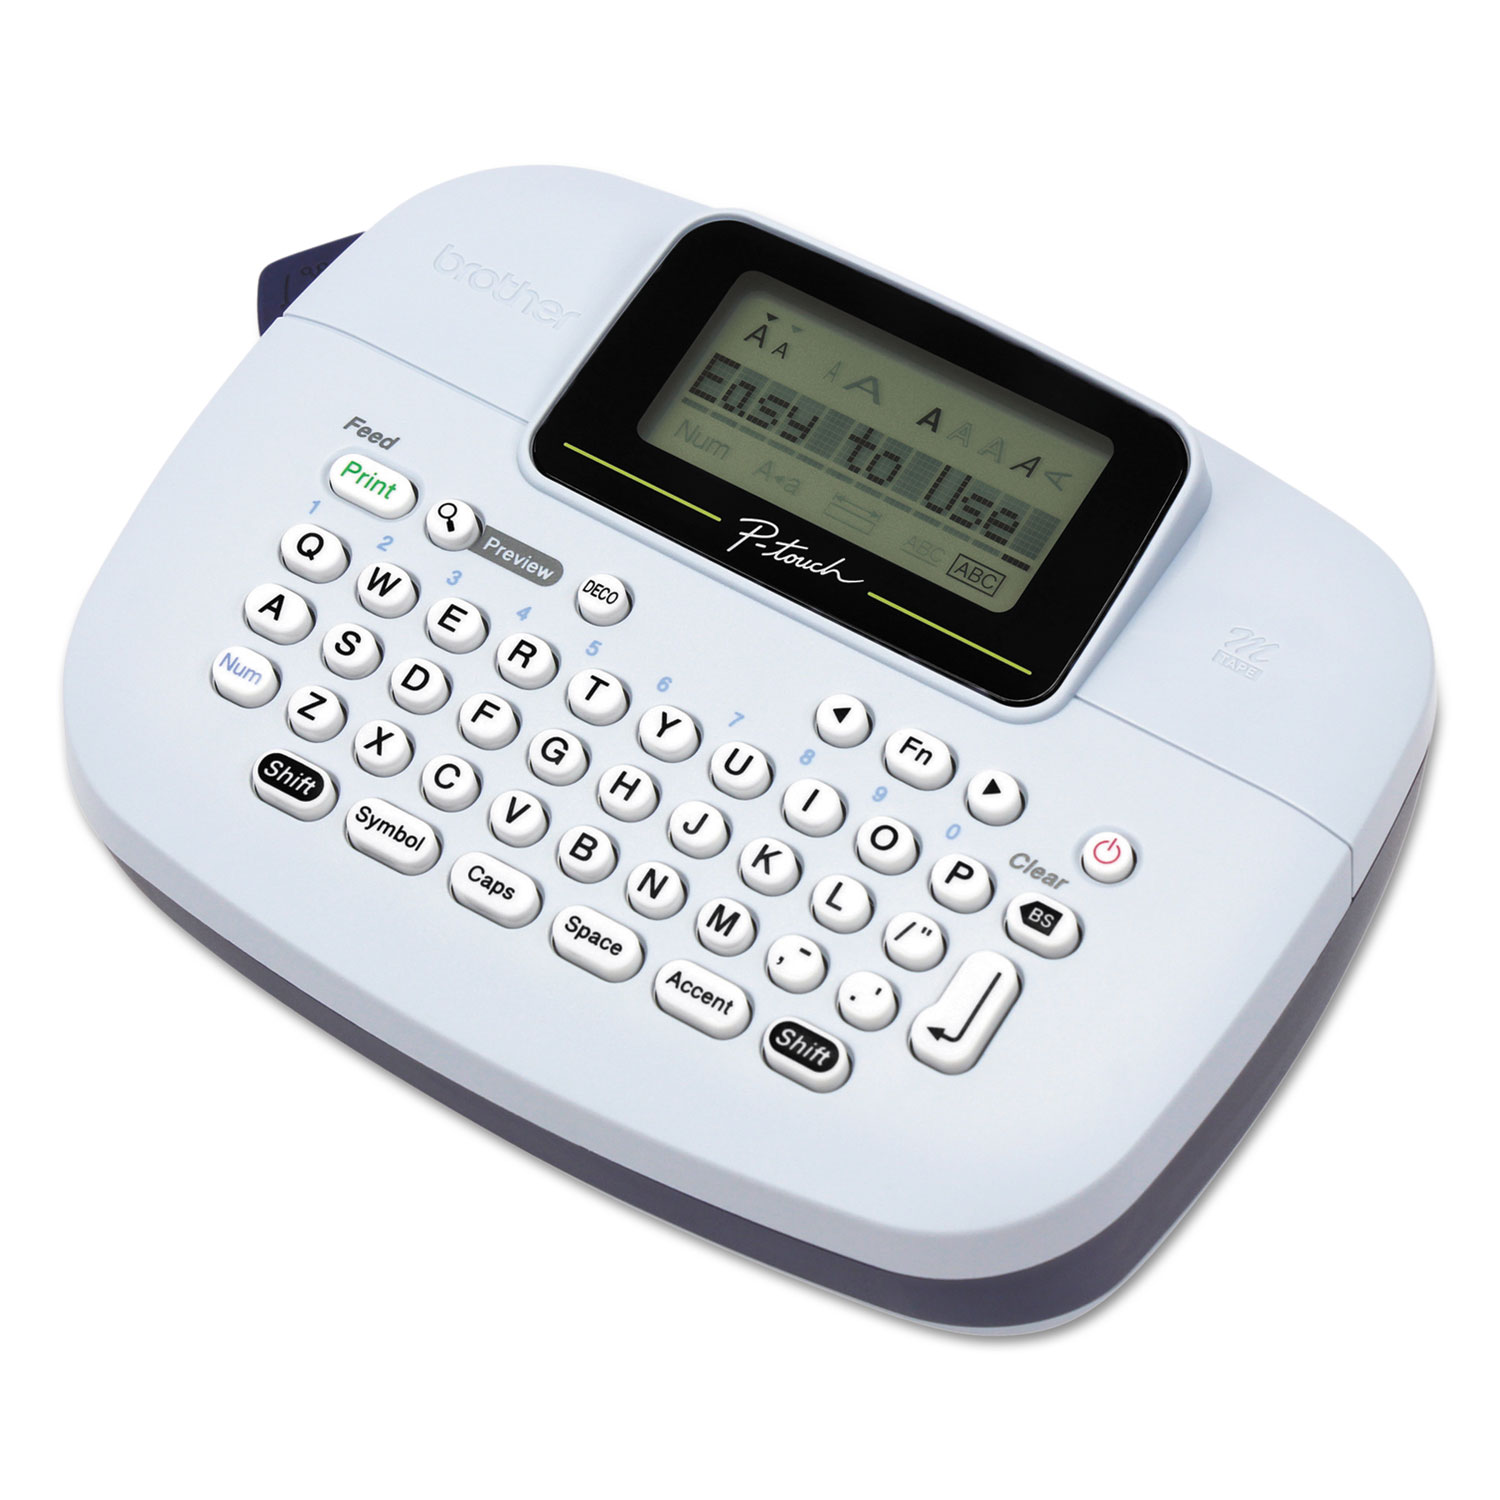 Pt M95 Handy Label Maker By Brother P Touch Brtptm95